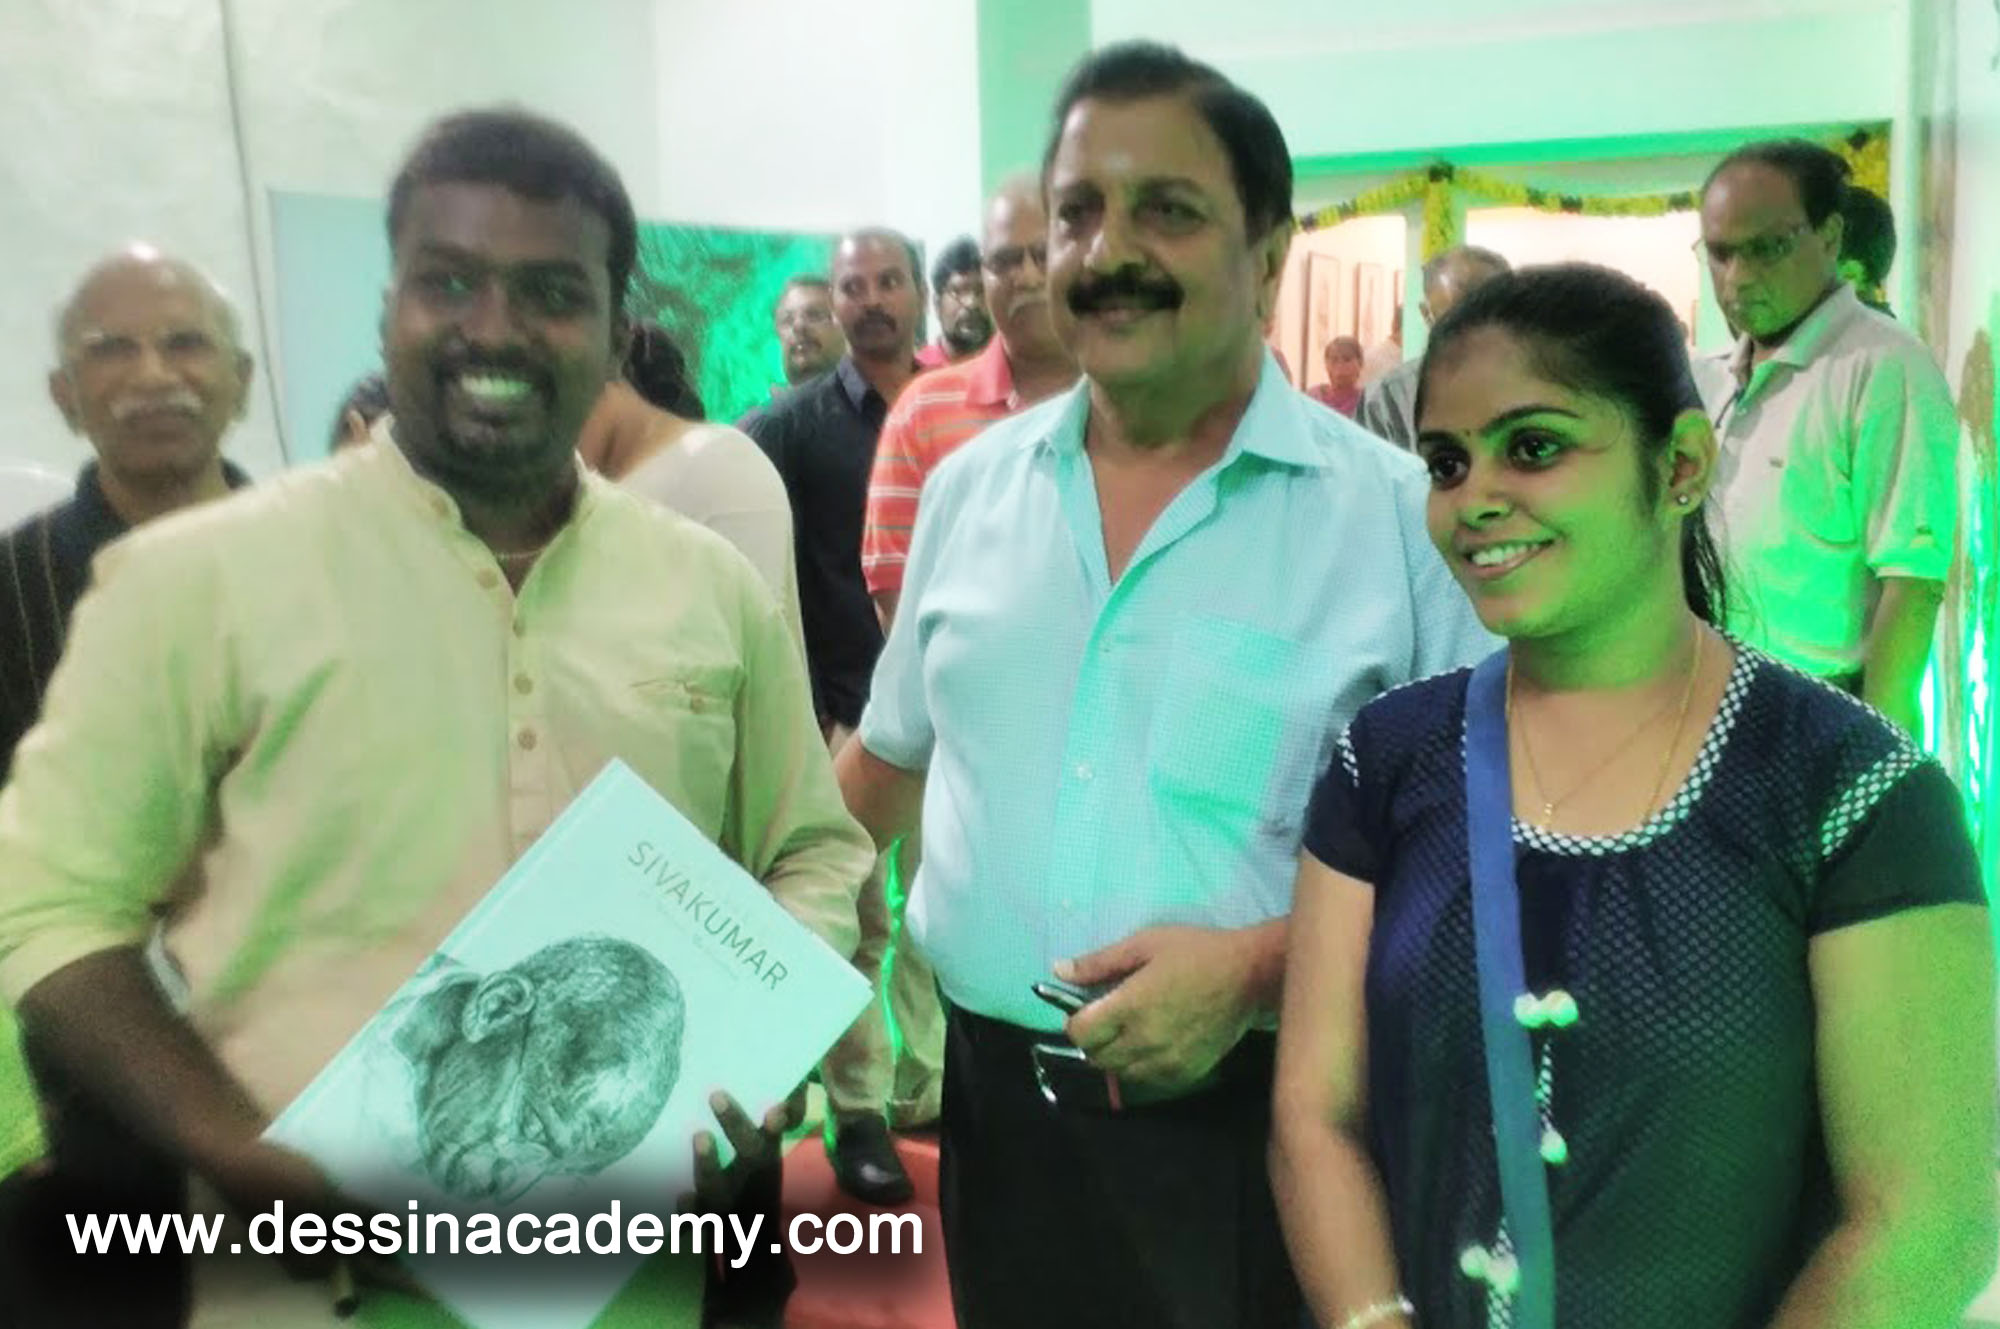 Dessin School of arts Event Gallery 4, sketching Institute For Kids in Anna Nagar East L BlockDessin School of Arts